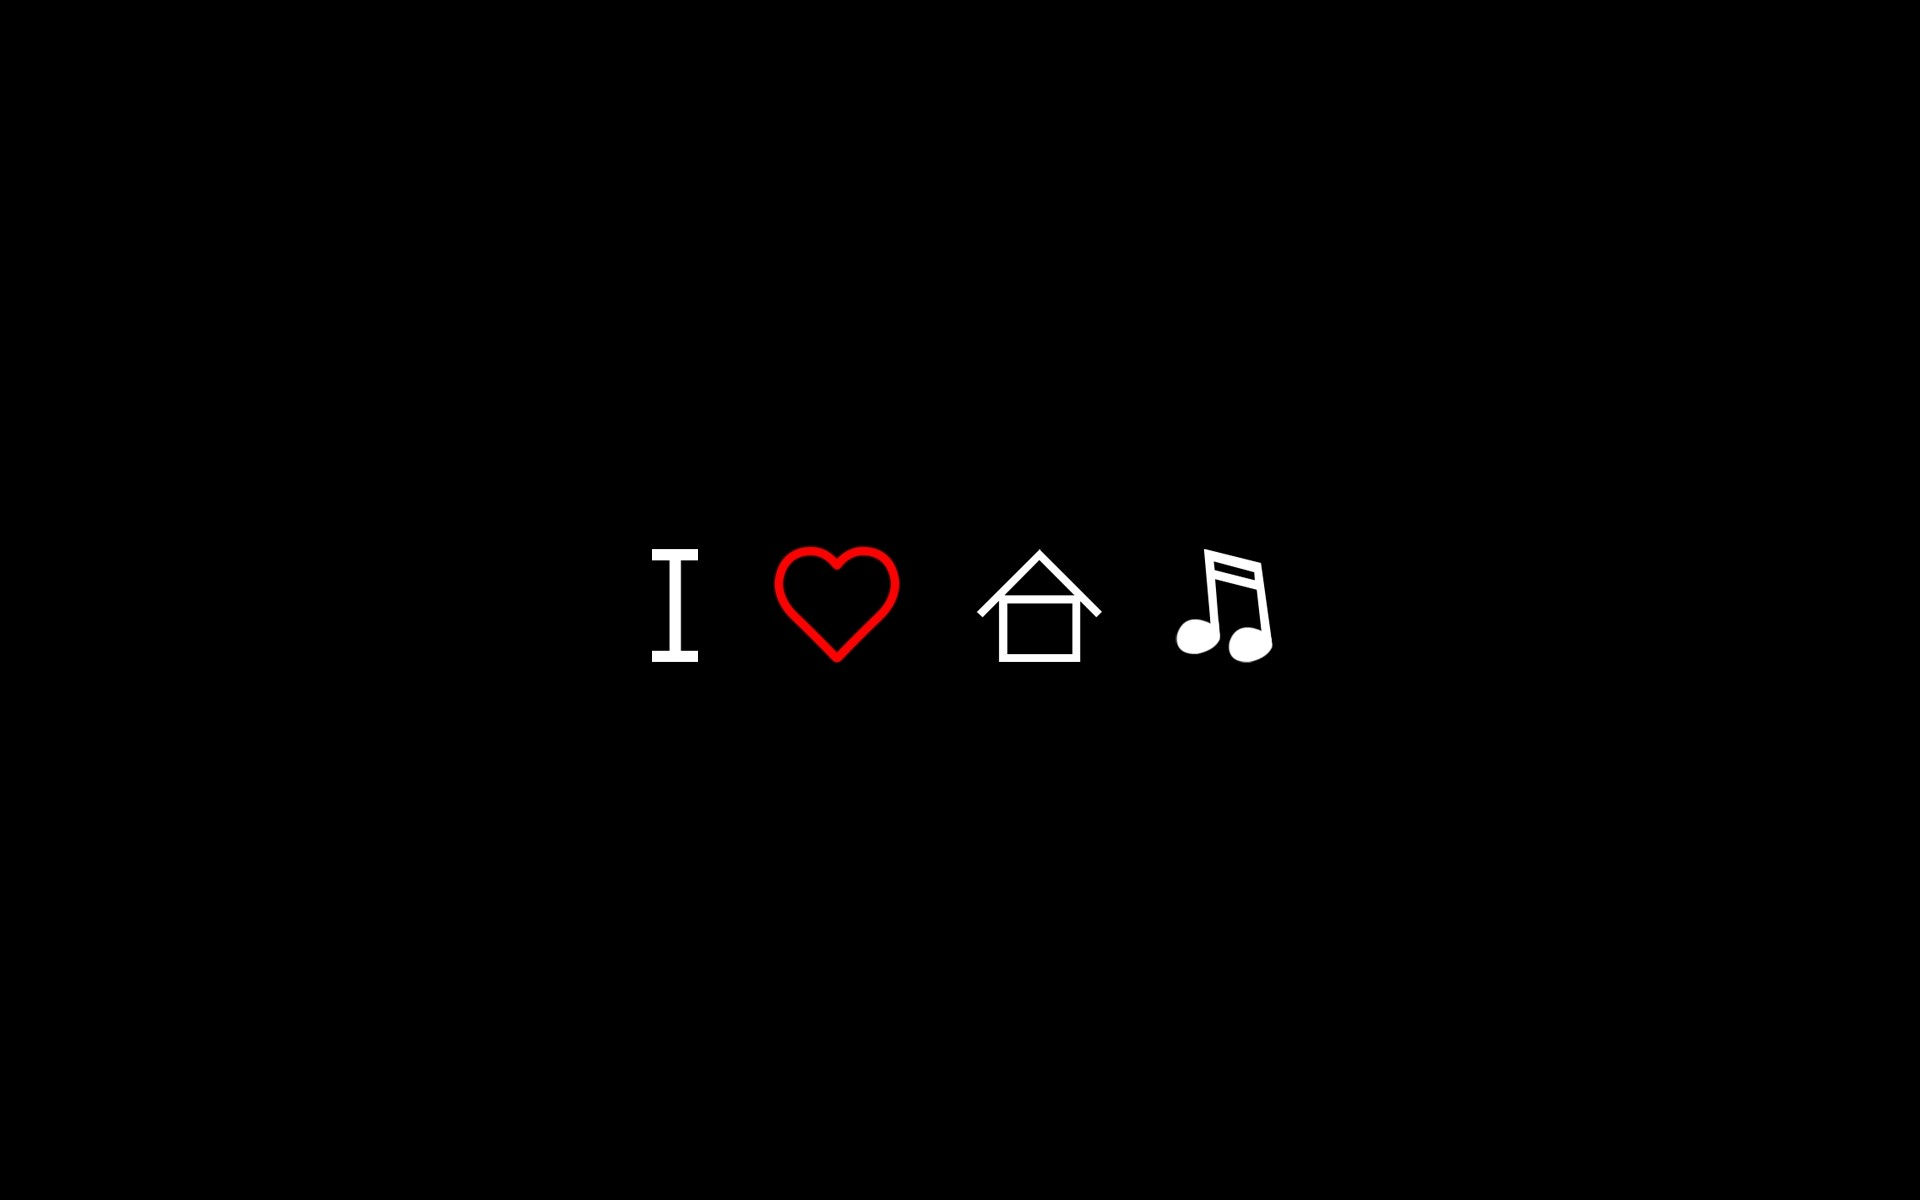 Download the I Love House Music Wallpaper, I Love House Music .